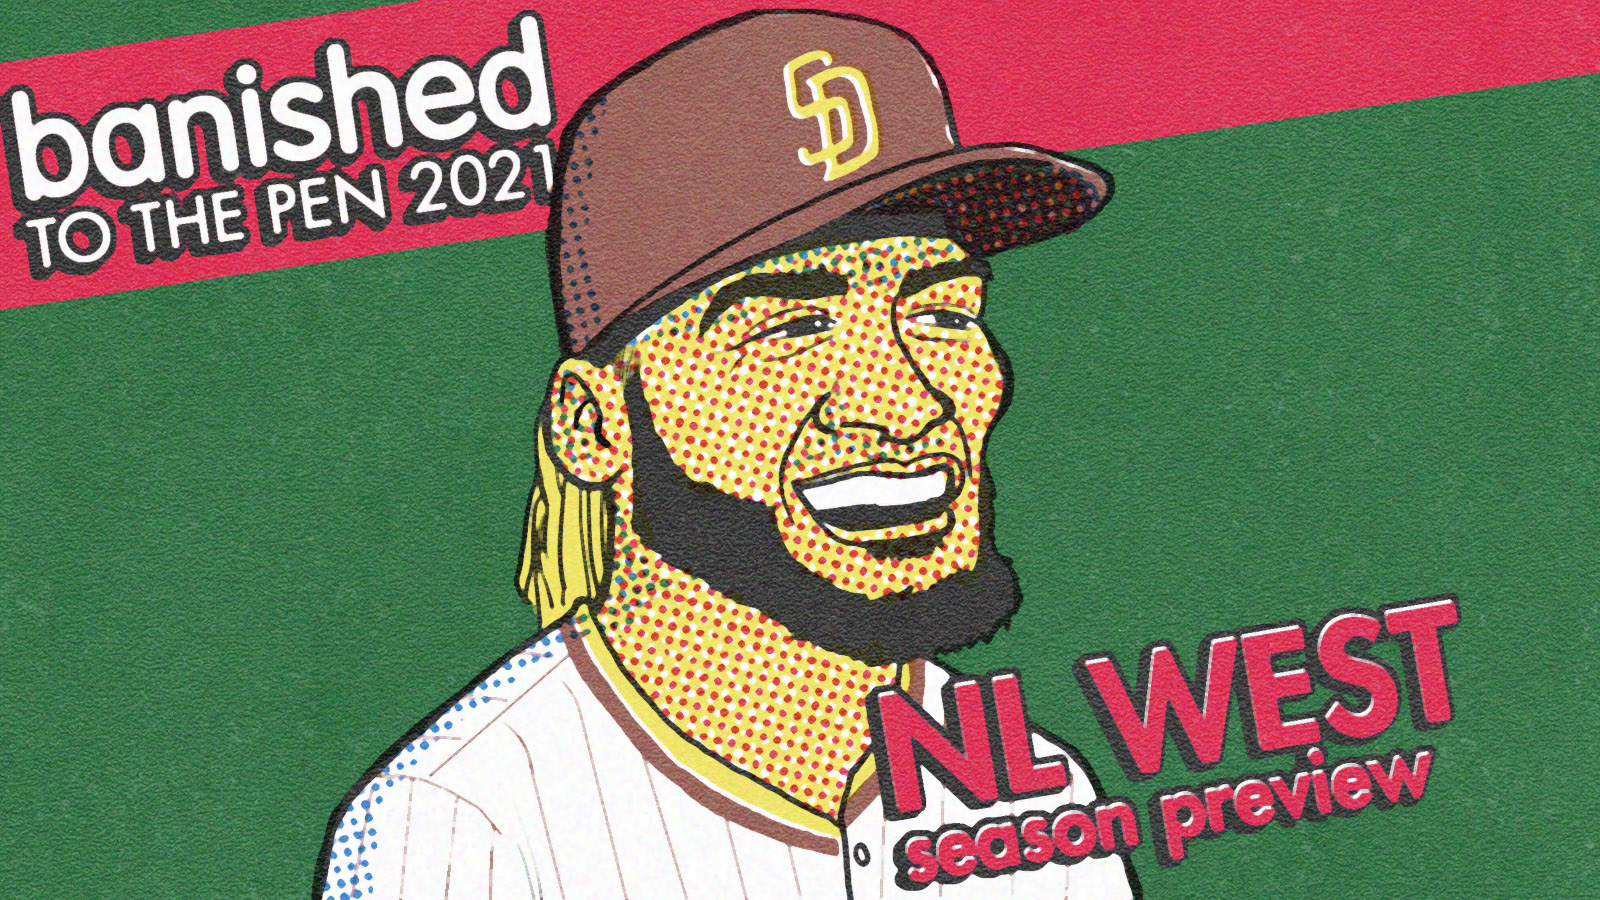 Season Previews 2021 - NL West (Fernando Tatis Jr)